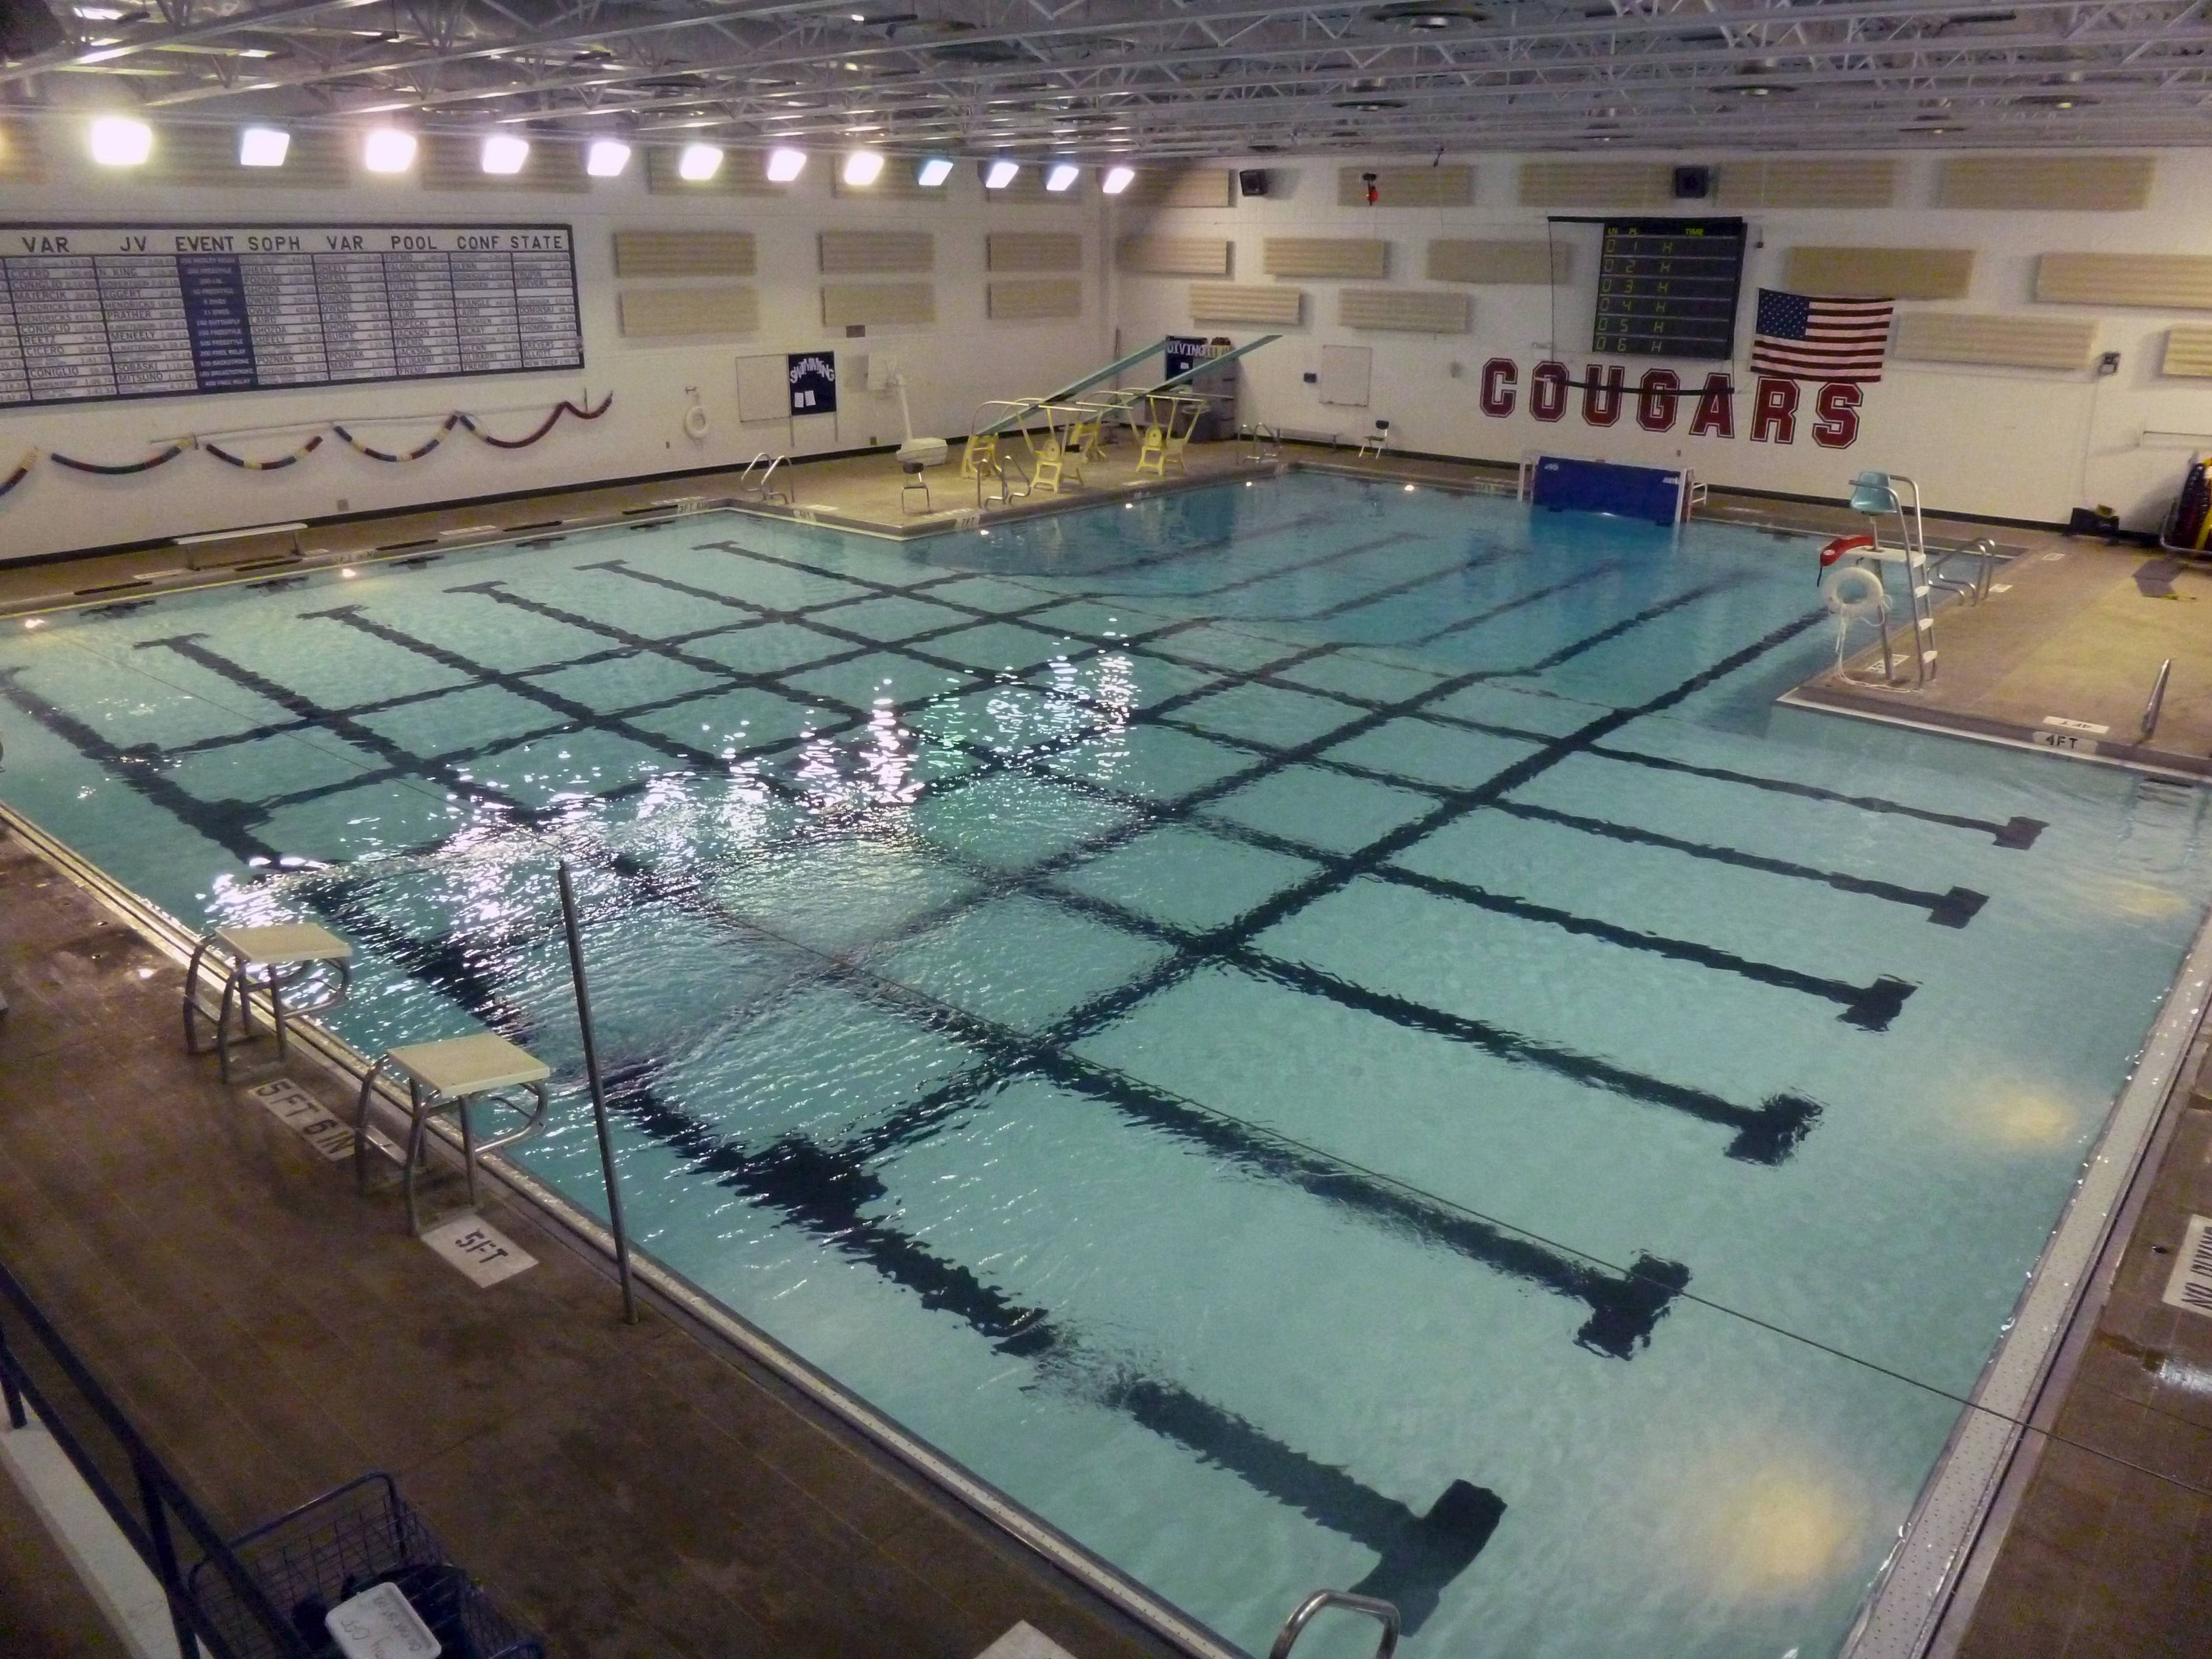 The swimming pool at Conant High School will be the first at Palatine-Schaumburg High School District 211's five schools to undergo replacement during the next three years. All the district's identical pools have been in use since 1978.